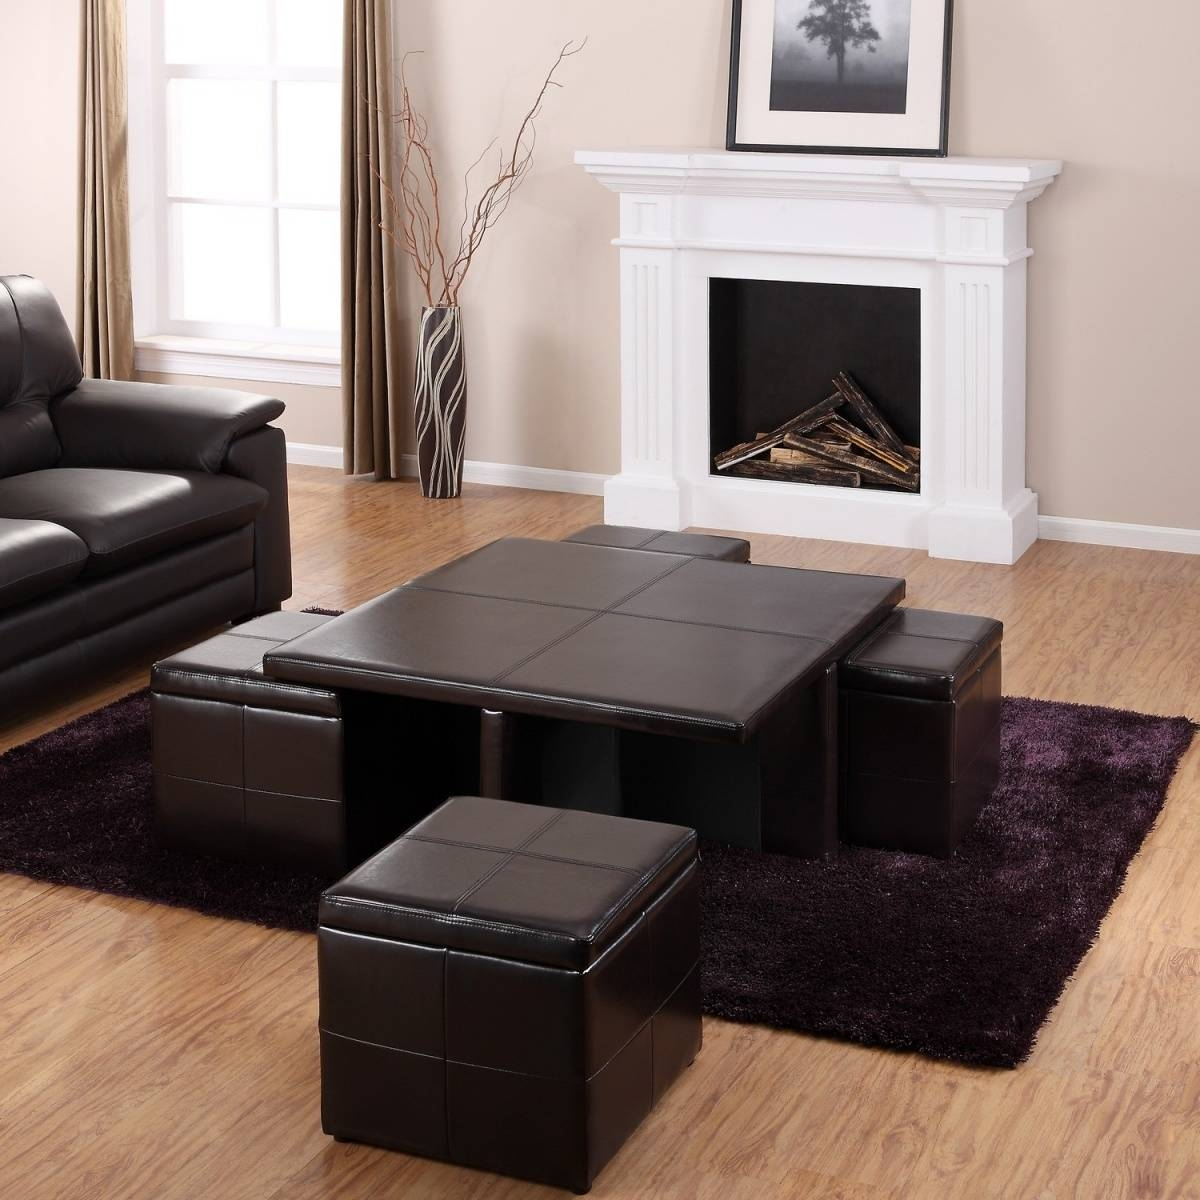 Coffee Table With Ottomans Underneath Decofurnish Intended For Purple  Ottoman Coffee Tables (Photo 3 Of